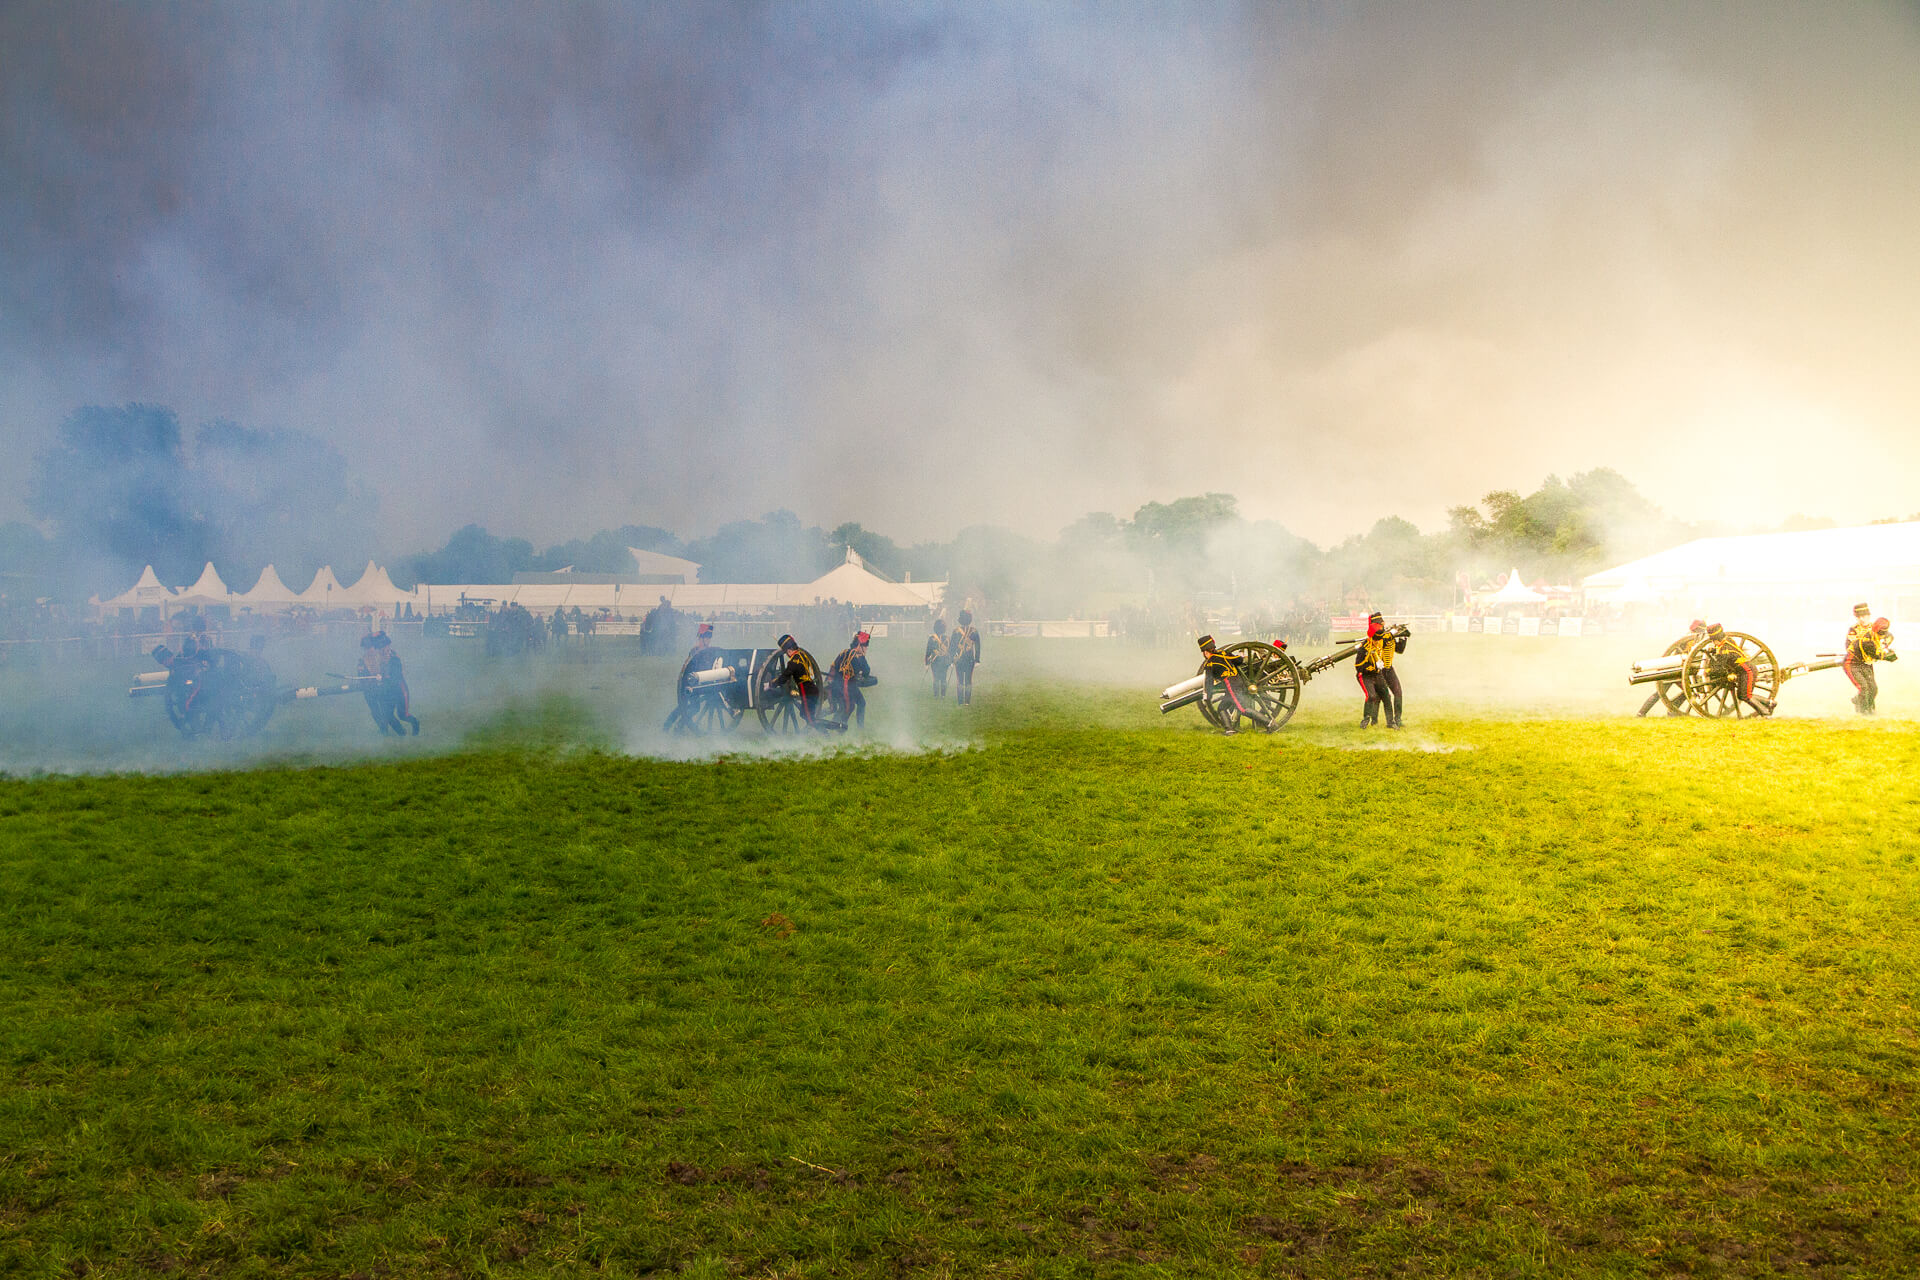 A wide angle image of the arena at the 3 Counties Show Ground, Malvern. Displaying in the arena are the men and the guns of the Kings Troop Royal Horse Artillery, they are seen manoeuvring their guns by hand as part of their display. At points in the display blank rounds are fired from the guns, smoke from an earlier firing can be seen blowing across the arena.